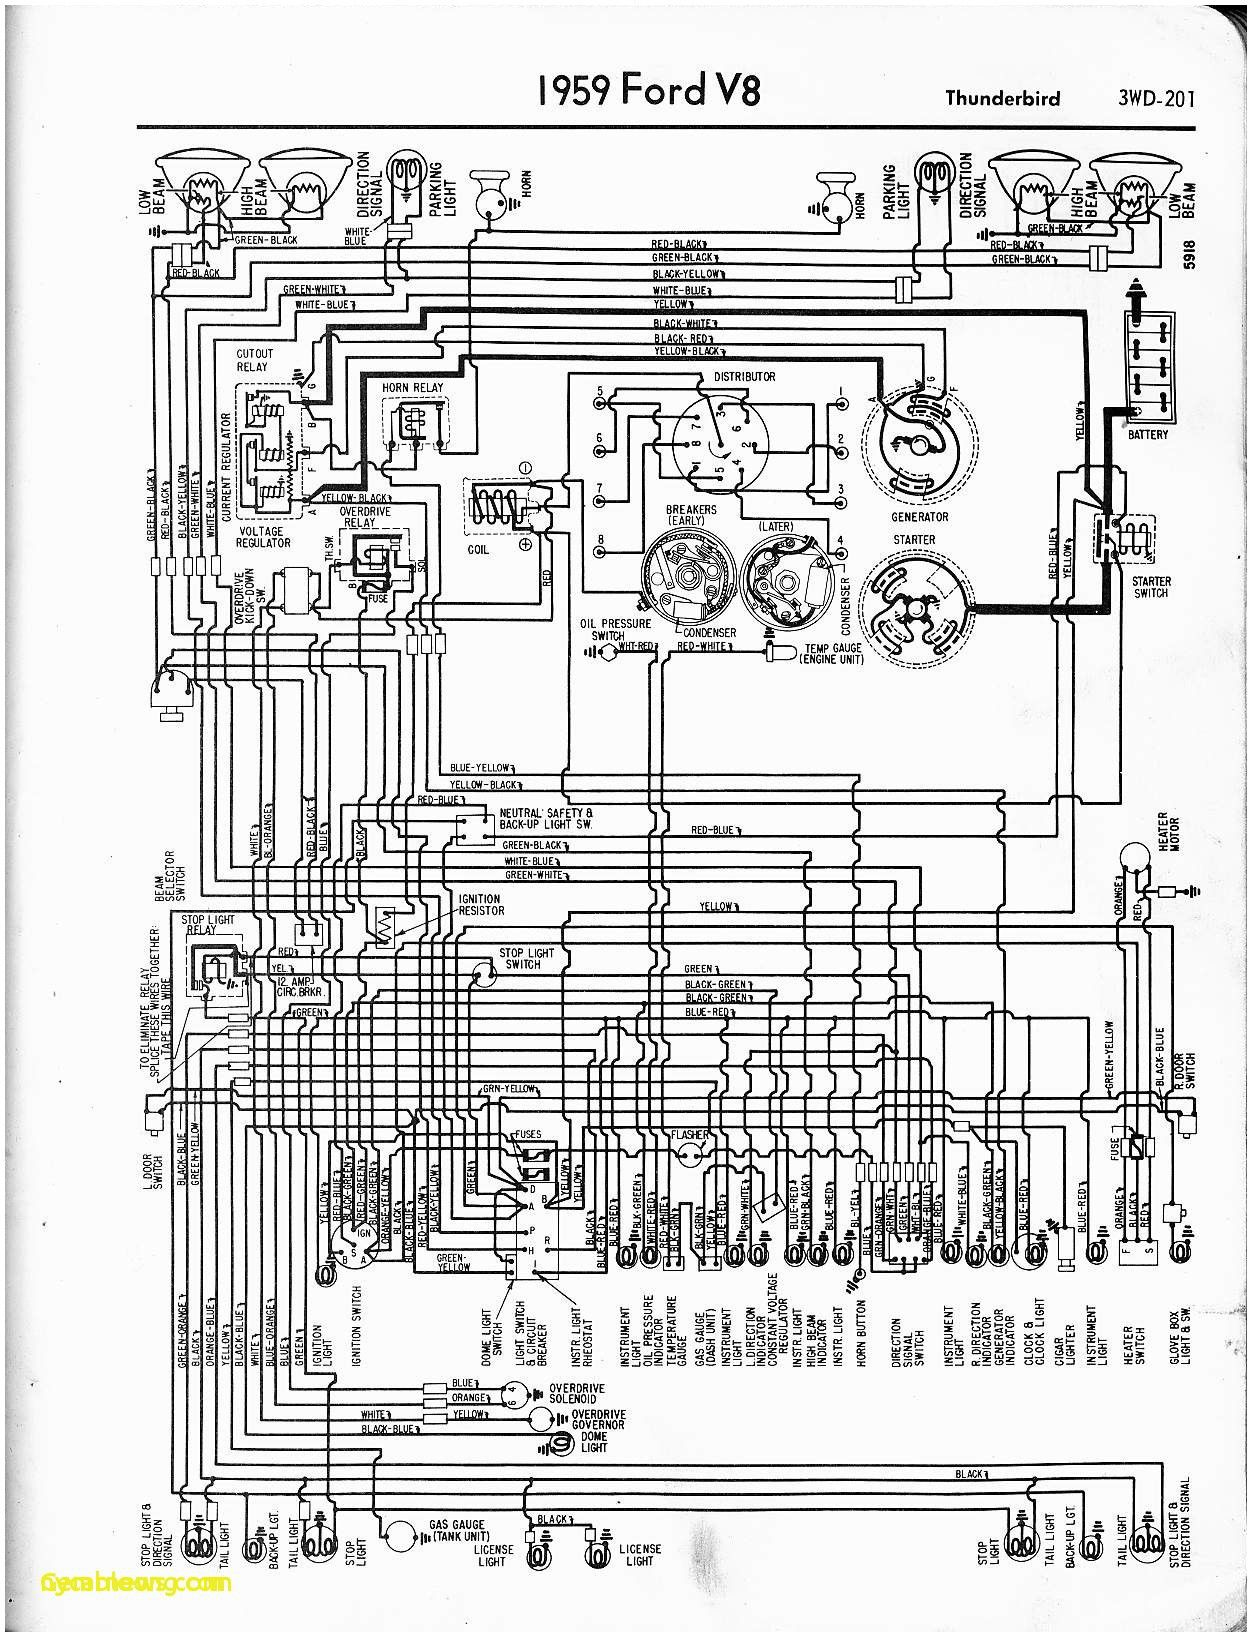 1951 mercury wiring diagram new ford and electric cars  with images  diagram design  ford  new ford and electric cars  with images